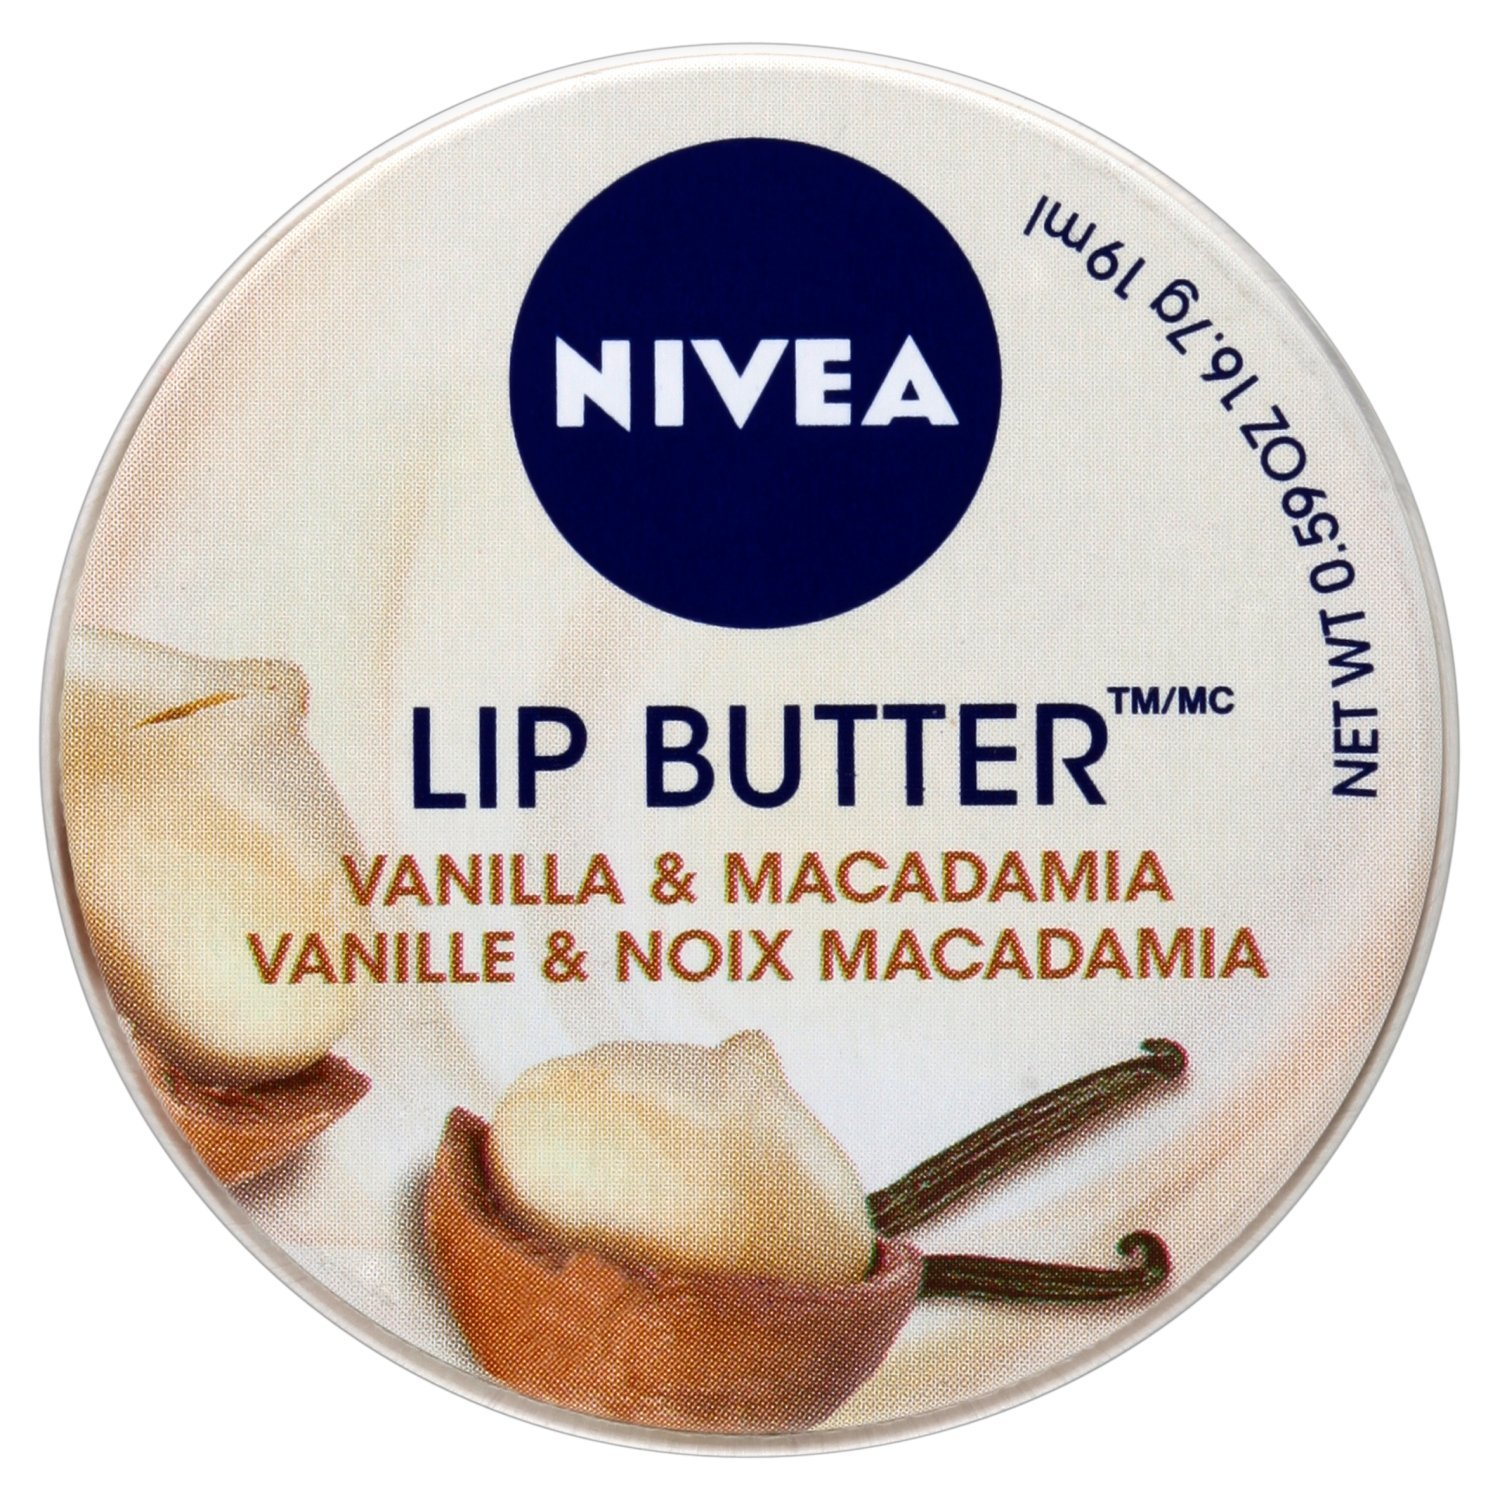 NIVEA Lip Butter Balm, Vanilla and Macadamia, 19 ml, Pack of 6 Beiersdorf UK Ltd 85264-04524-34